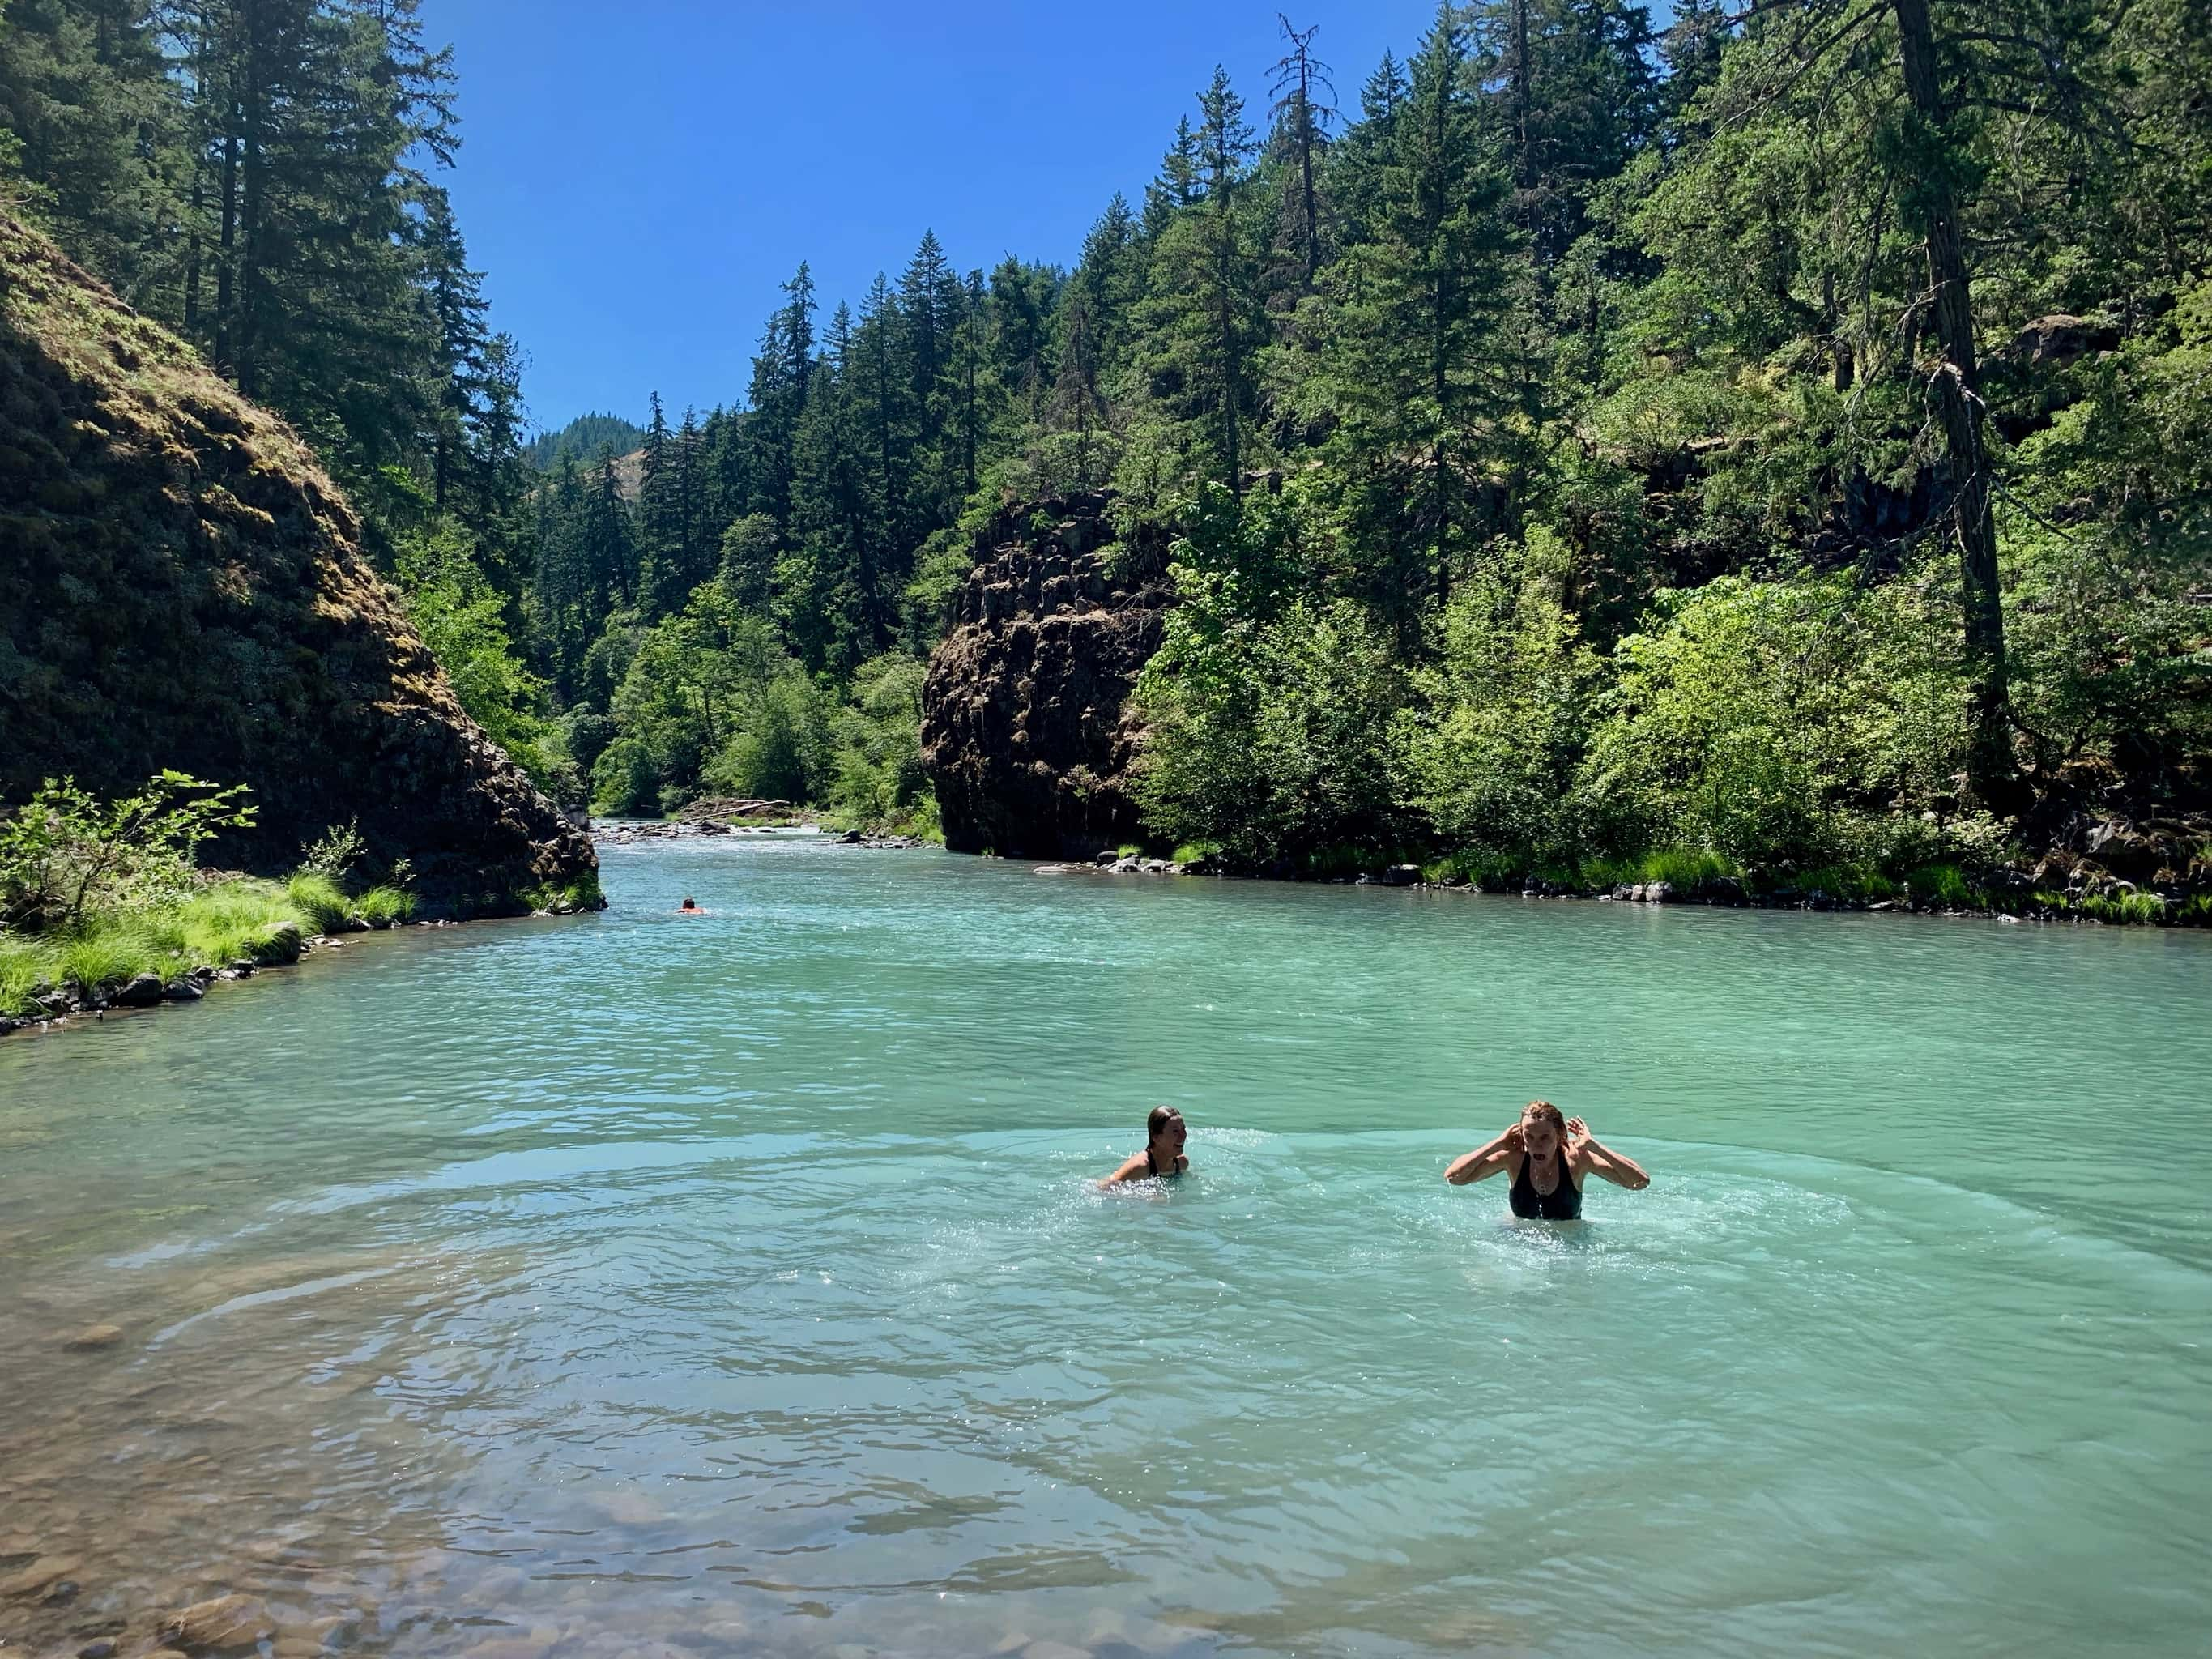 Swimming near Punchbowl falls at the confluence of the west fork and east fork of Hood River.